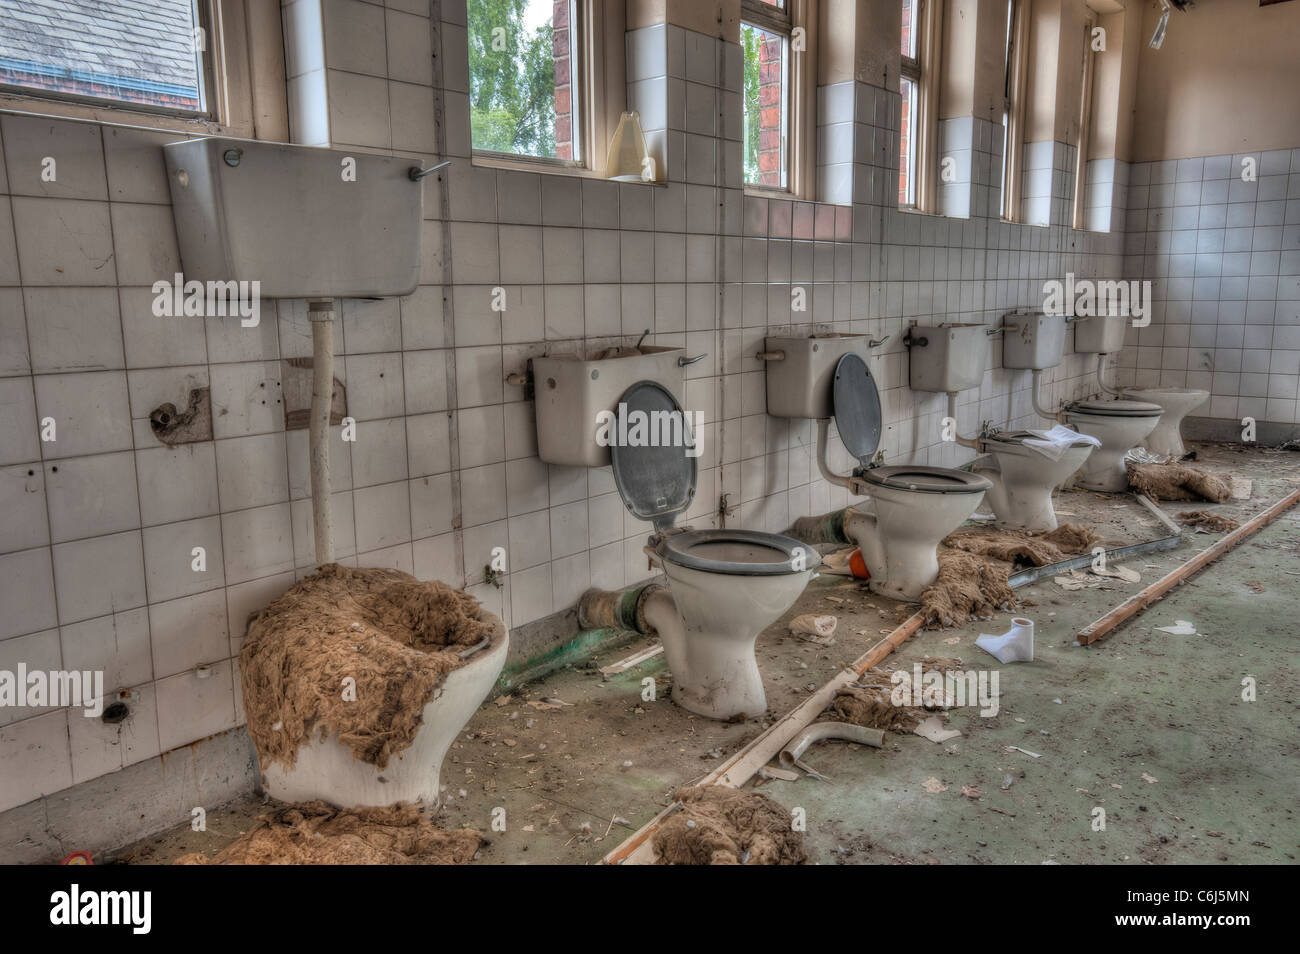 Vandalized Toilets in the Lunatic Asylum Wing of a Derelict Hospital - Stock Image